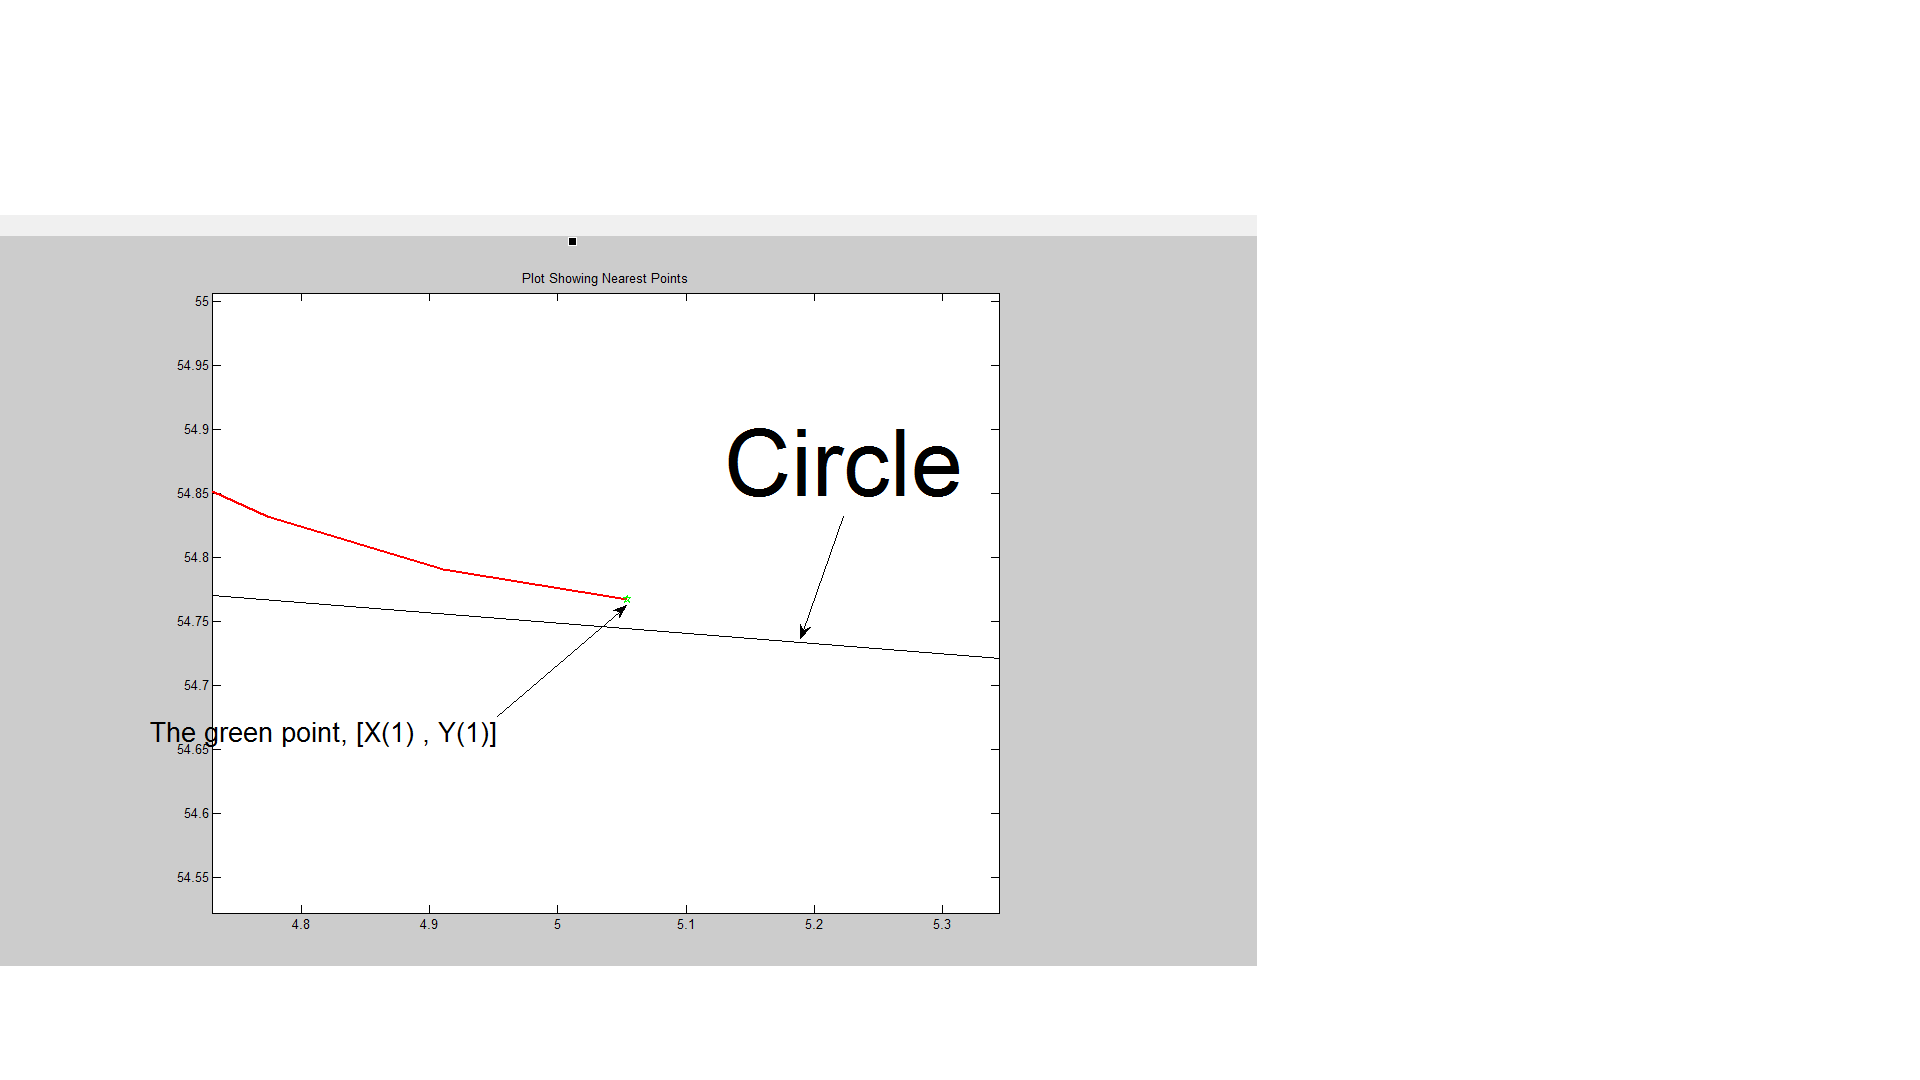 However, I Need To Plot A Tangent Line From [x(1) , Y(1)] To This [0 , 0]  Centered Circle With Radius Of R As An Image;